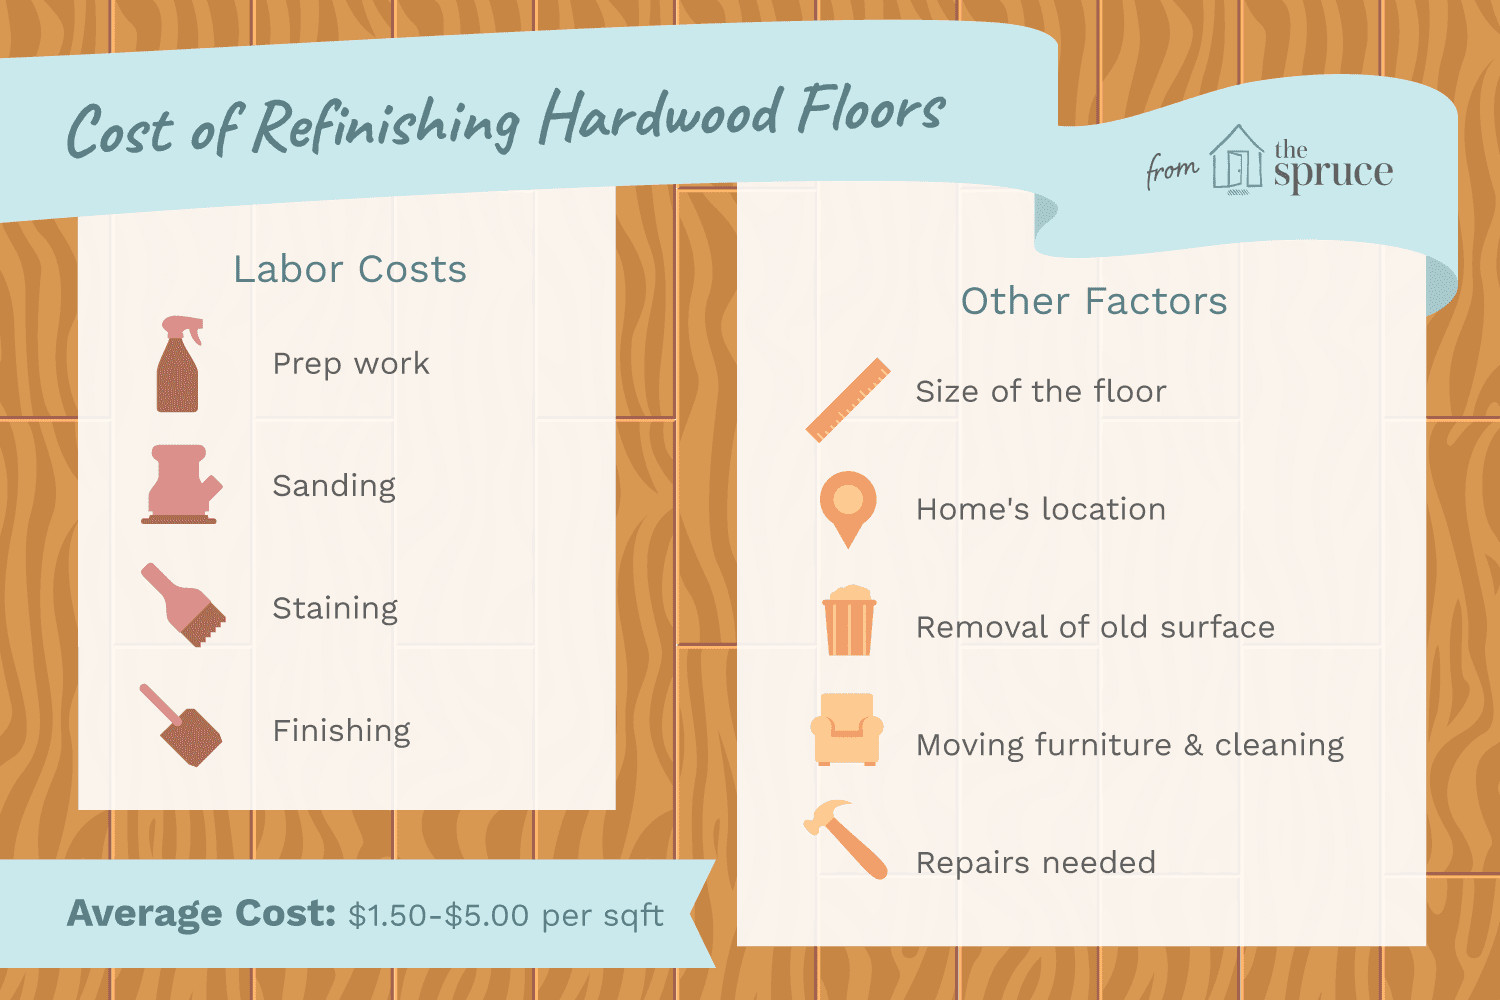 hardwood floor refinishing edmonton of the cost to refinish hardwood floors within cost to refinish hardwood floors 1314853 final 5bb6259346e0fb0026825ce2